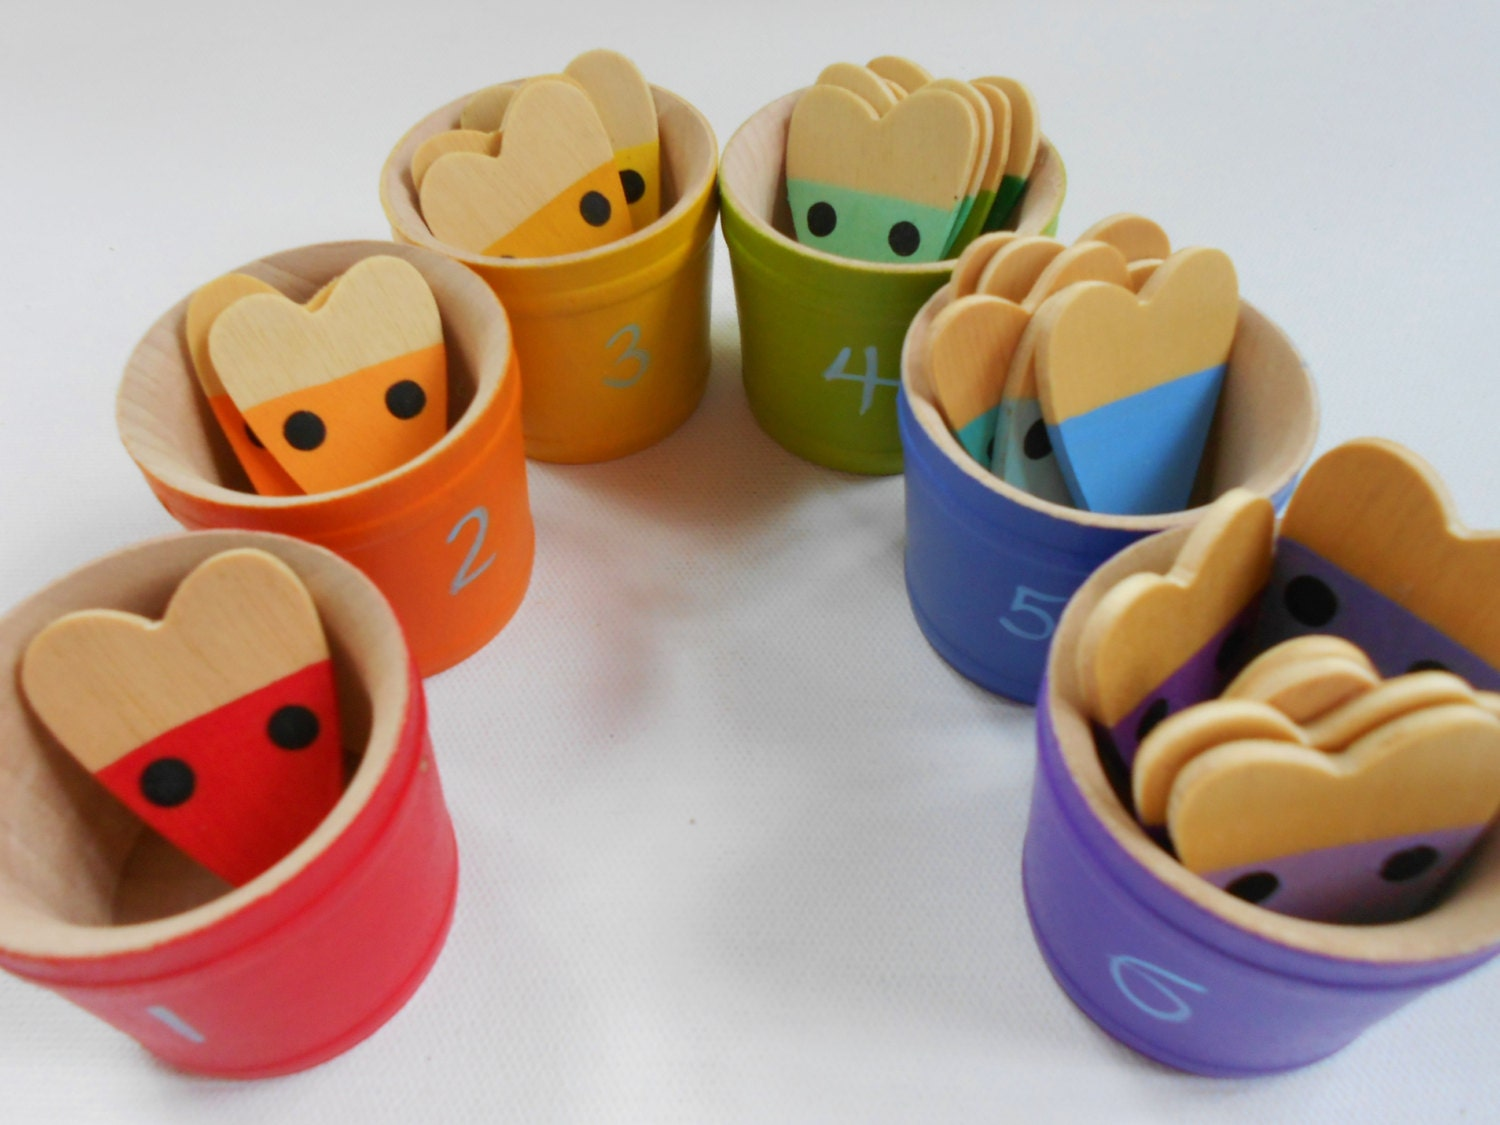 Montessori kids wood color matching sorting mice in buckets - Matching wood pieces of different colors ...